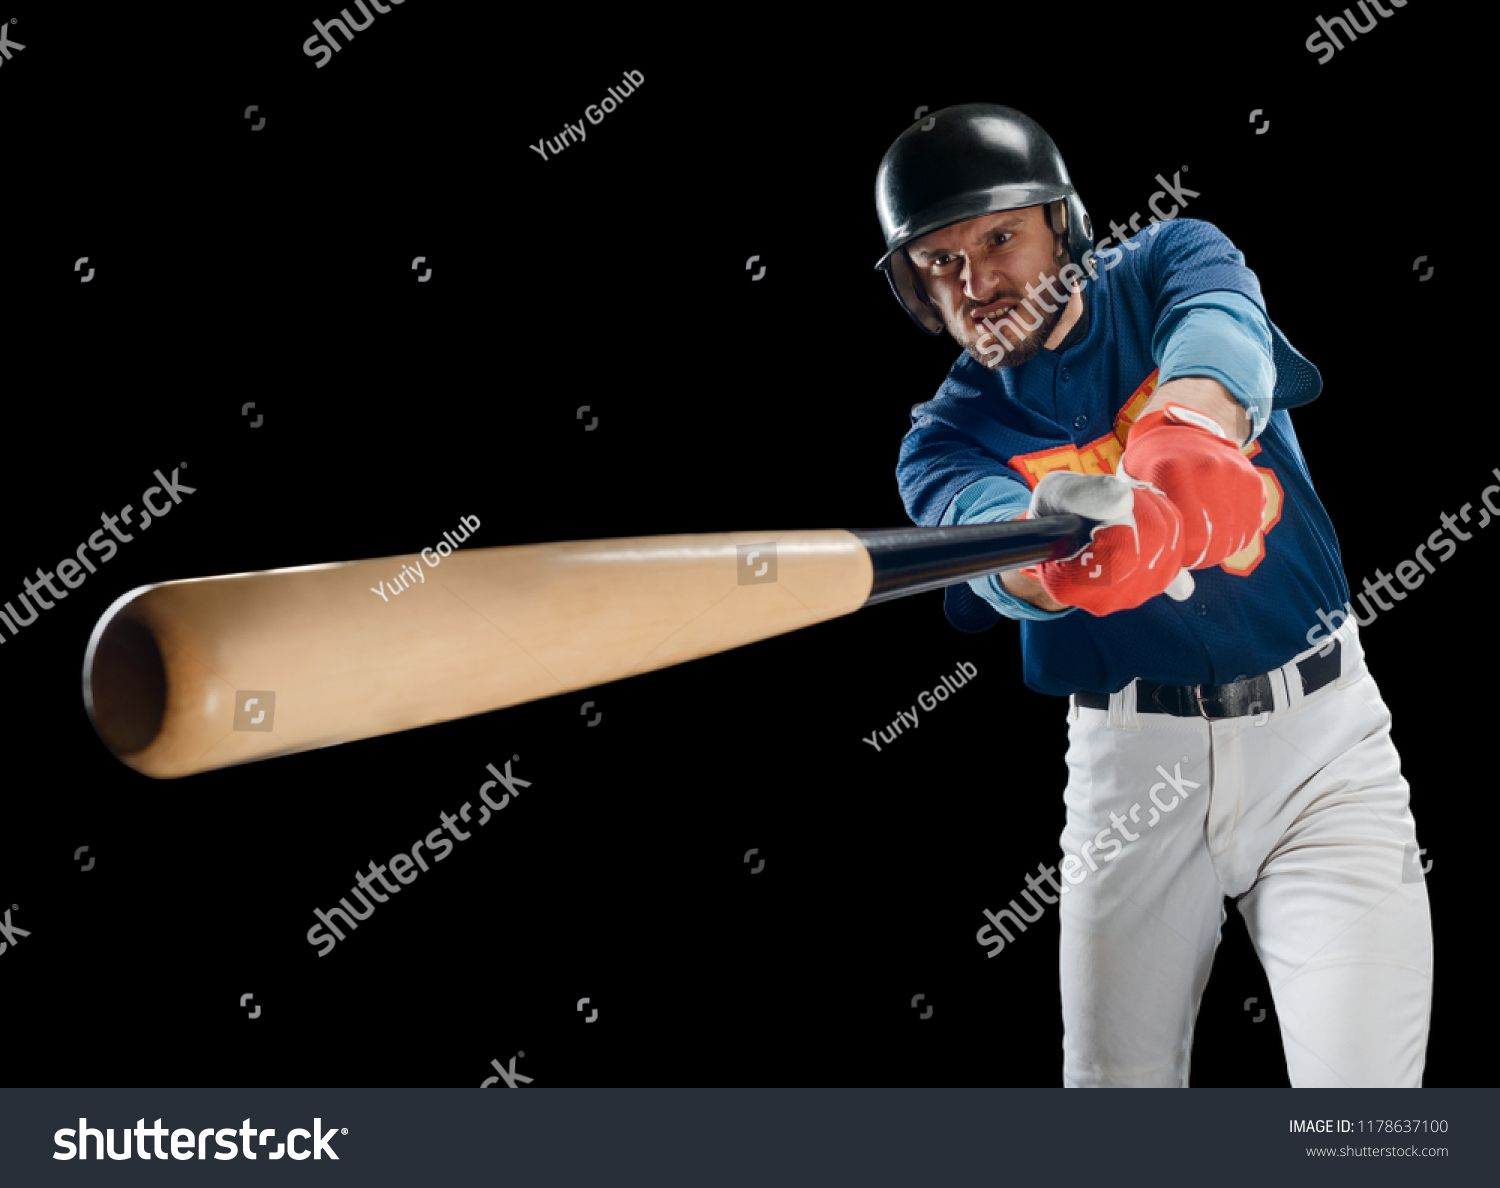 Portrait Of A Batter Swinging A Bat On Black Powerful Sportsman With Rage Face Team Sport Background With Copy Space Ad Rage Faces Photo Editing Portrait